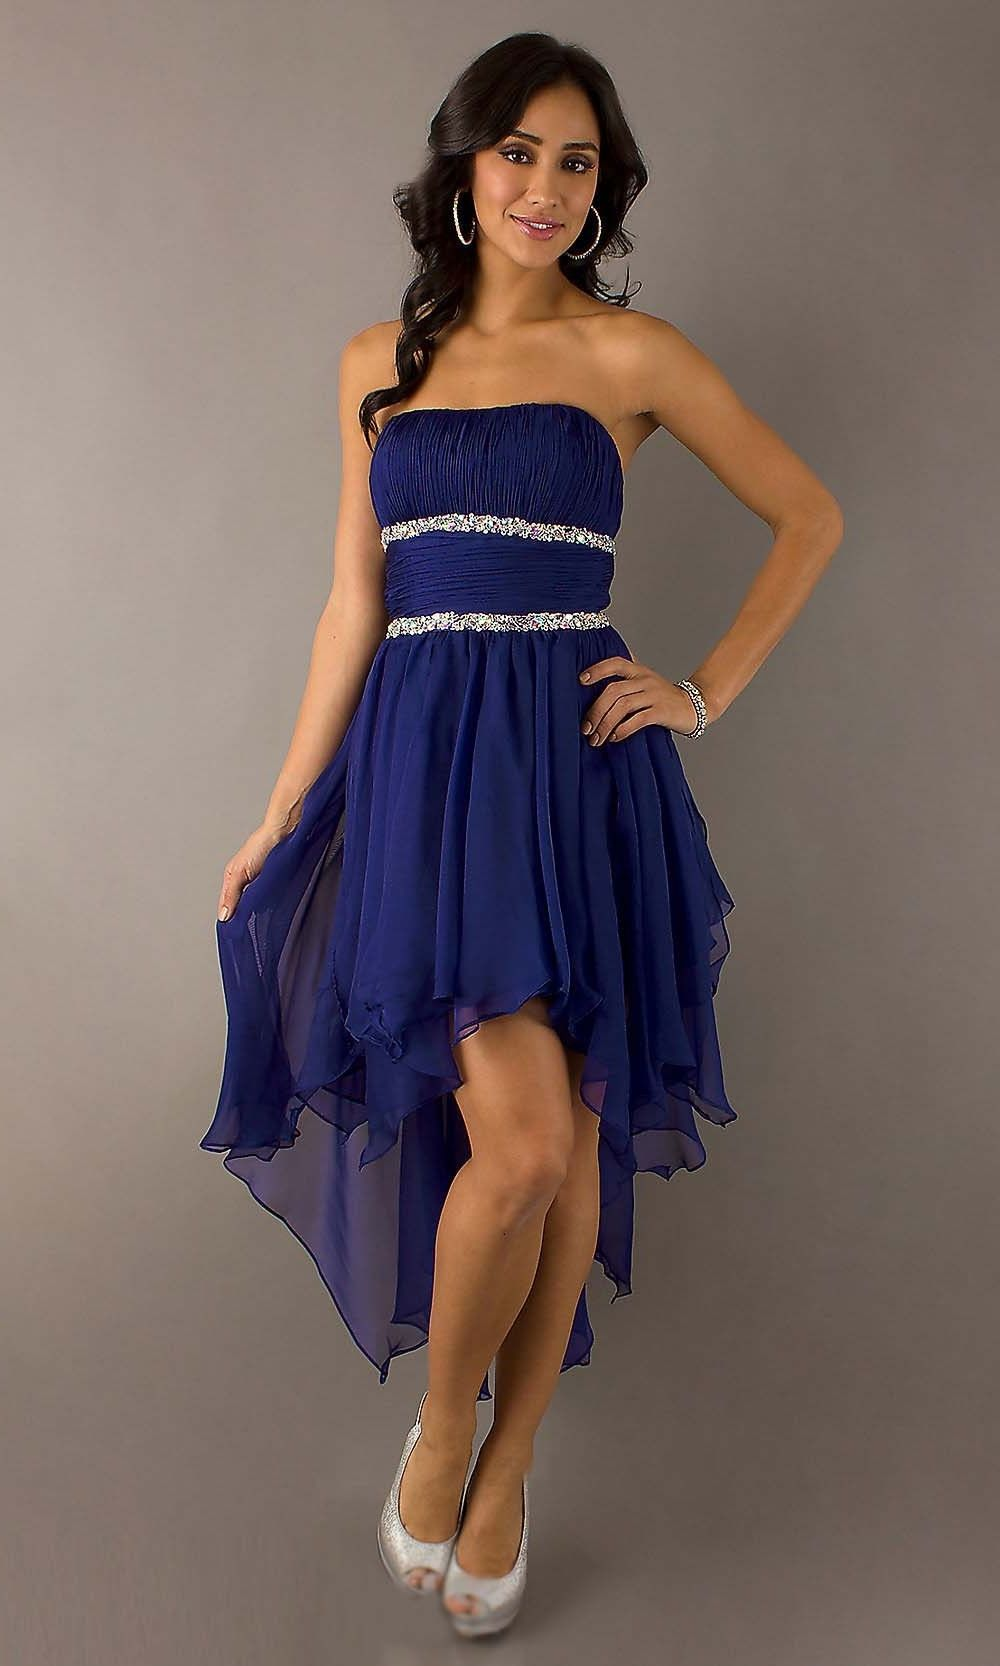 Strapless bra for wedding dress plus size  Ruffled Royal Blue Highlow Homecoming Dress  Prom and homecoming